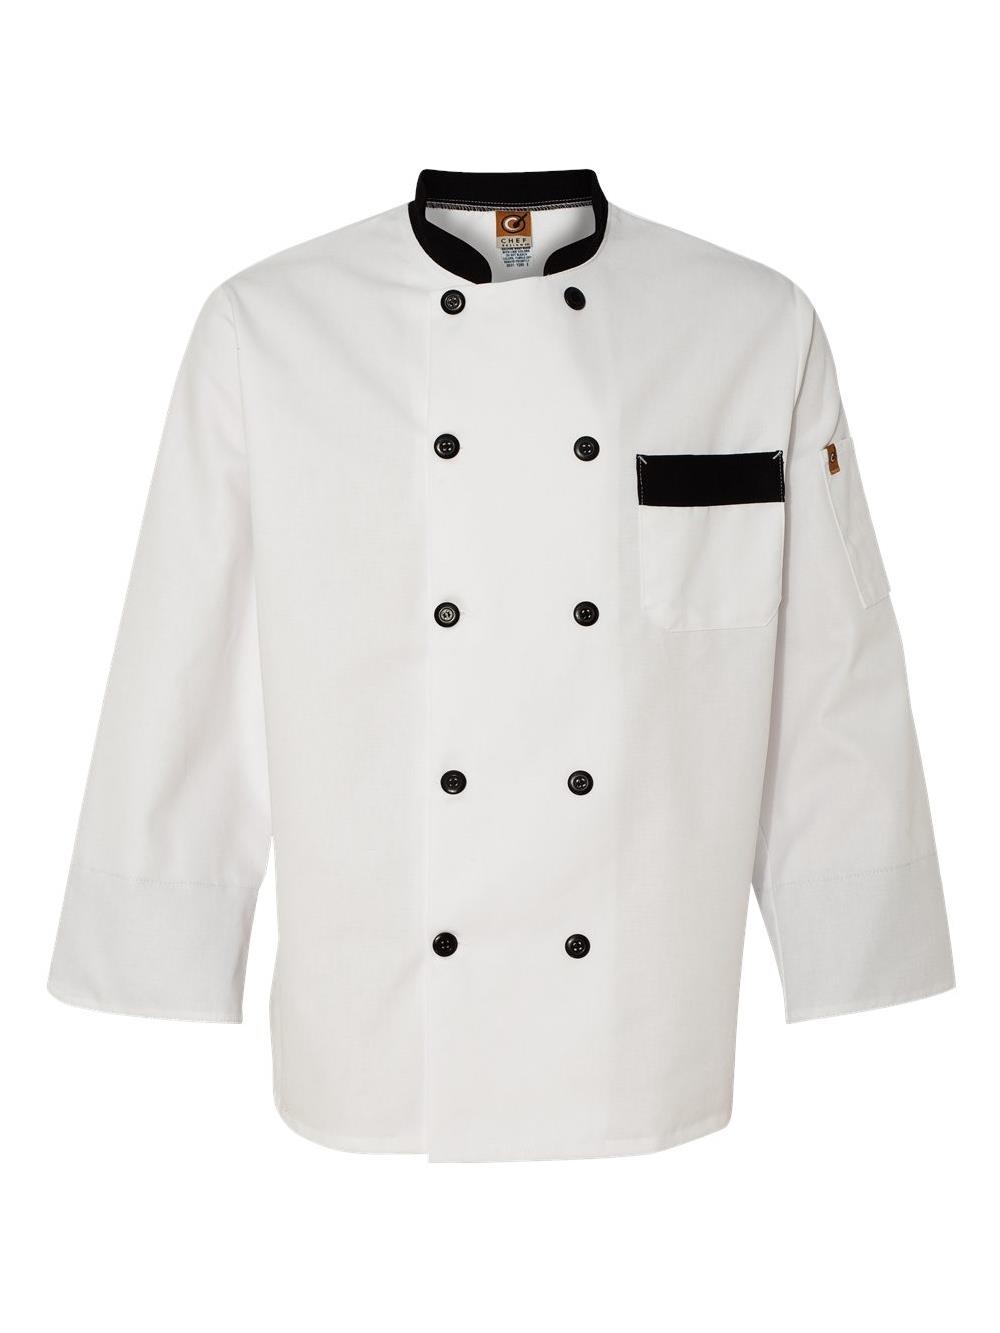 Men's Garnish Chef Coat